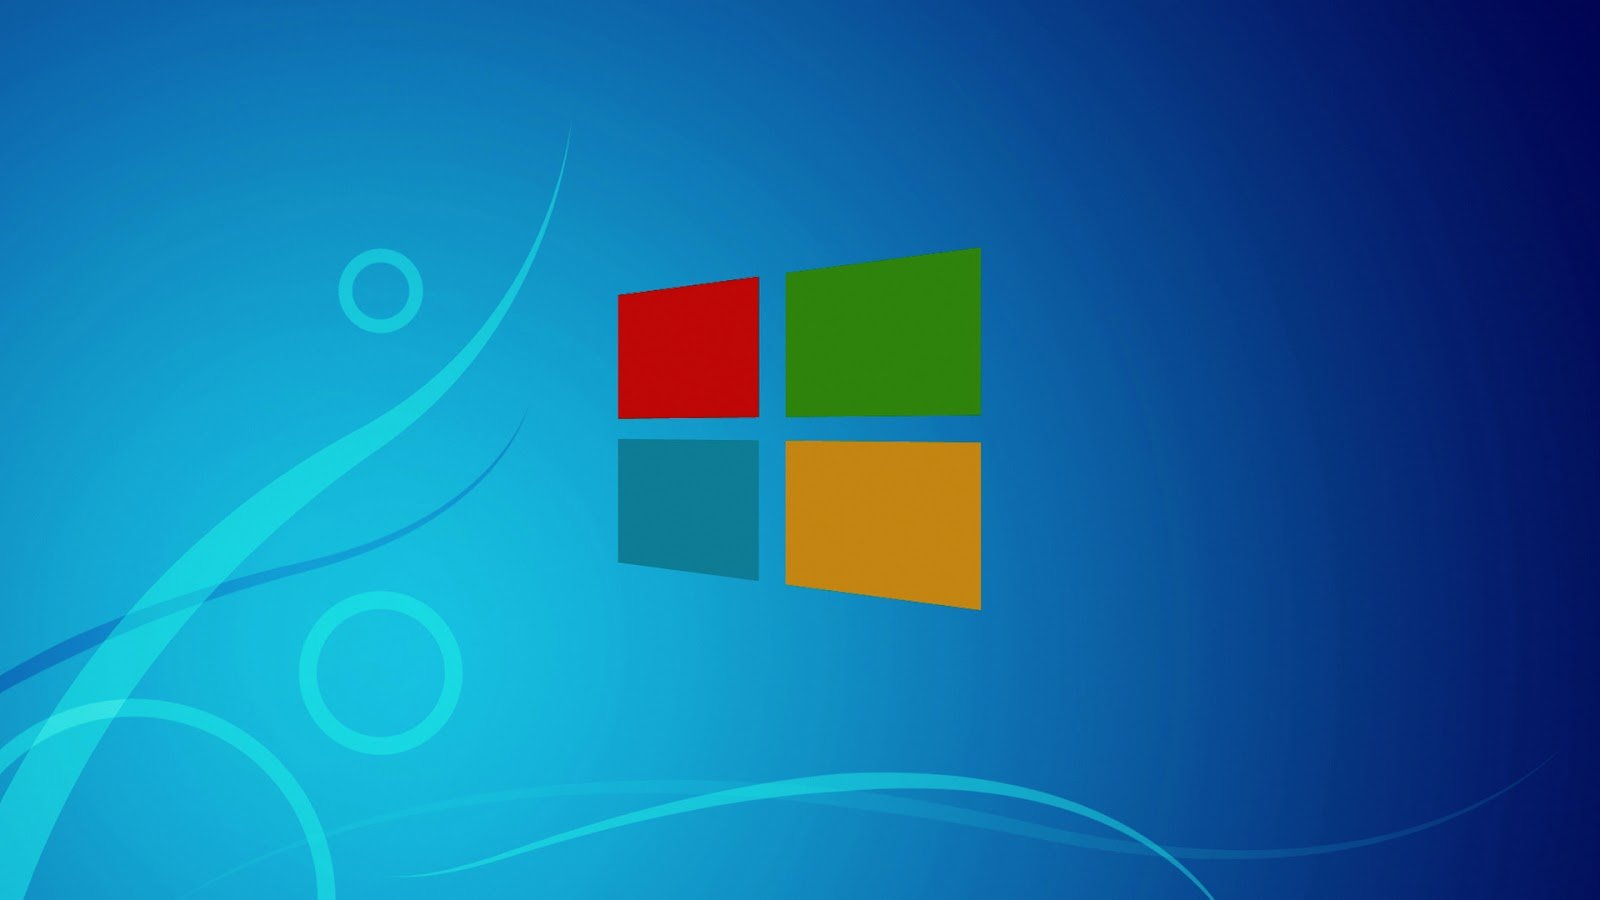 Windows 8 HD Wallpaper 1080p [1600x900